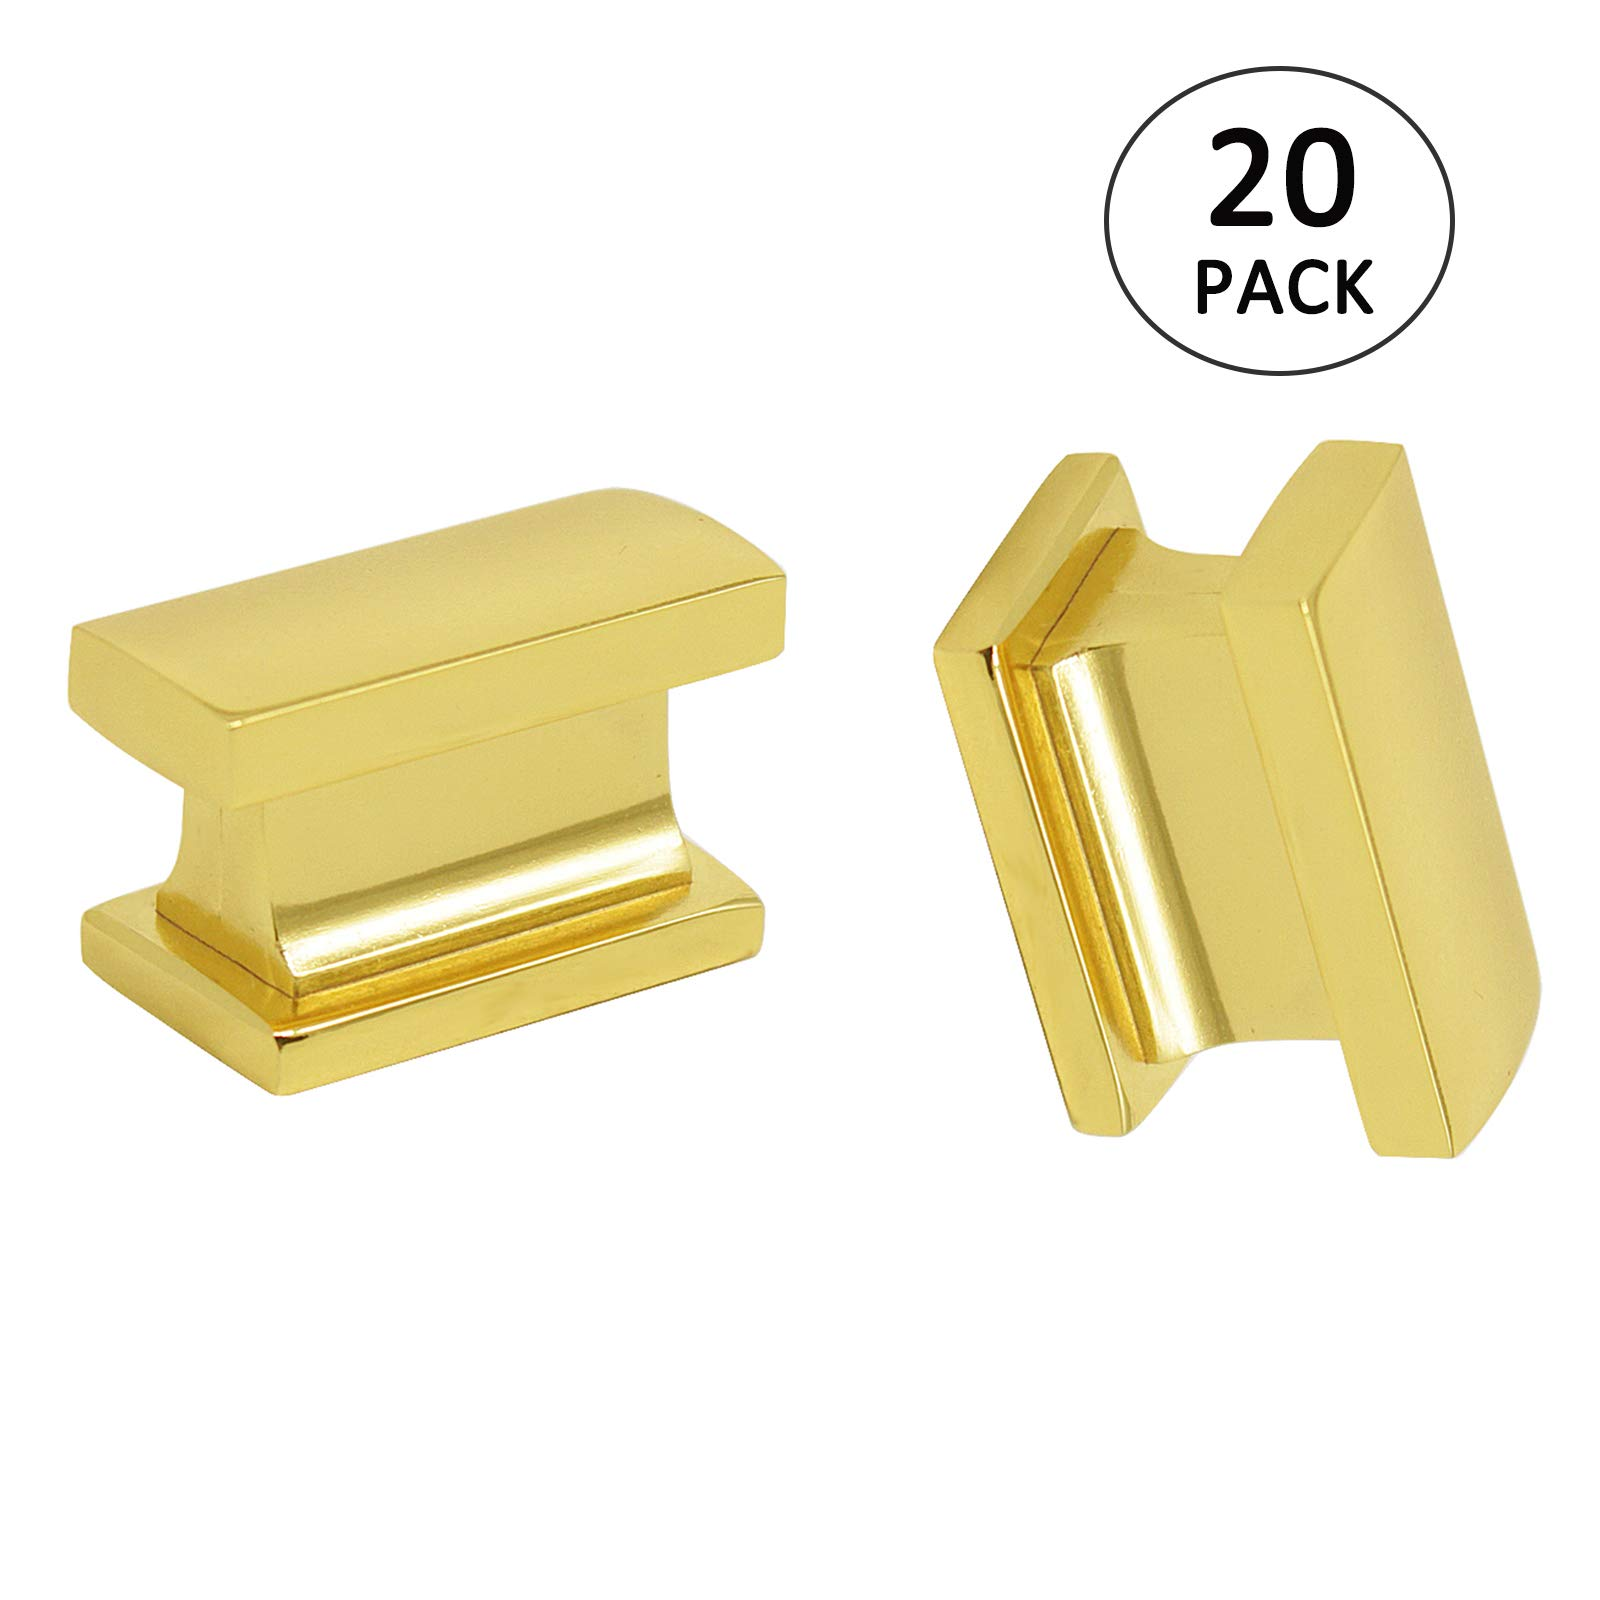 Gold Cabinet Knobs 20 Pack Rectangle Drawer Knob and Pulls Polished Brass - Contemporary Kitchen Cabinet Hardware Cupboard Handles